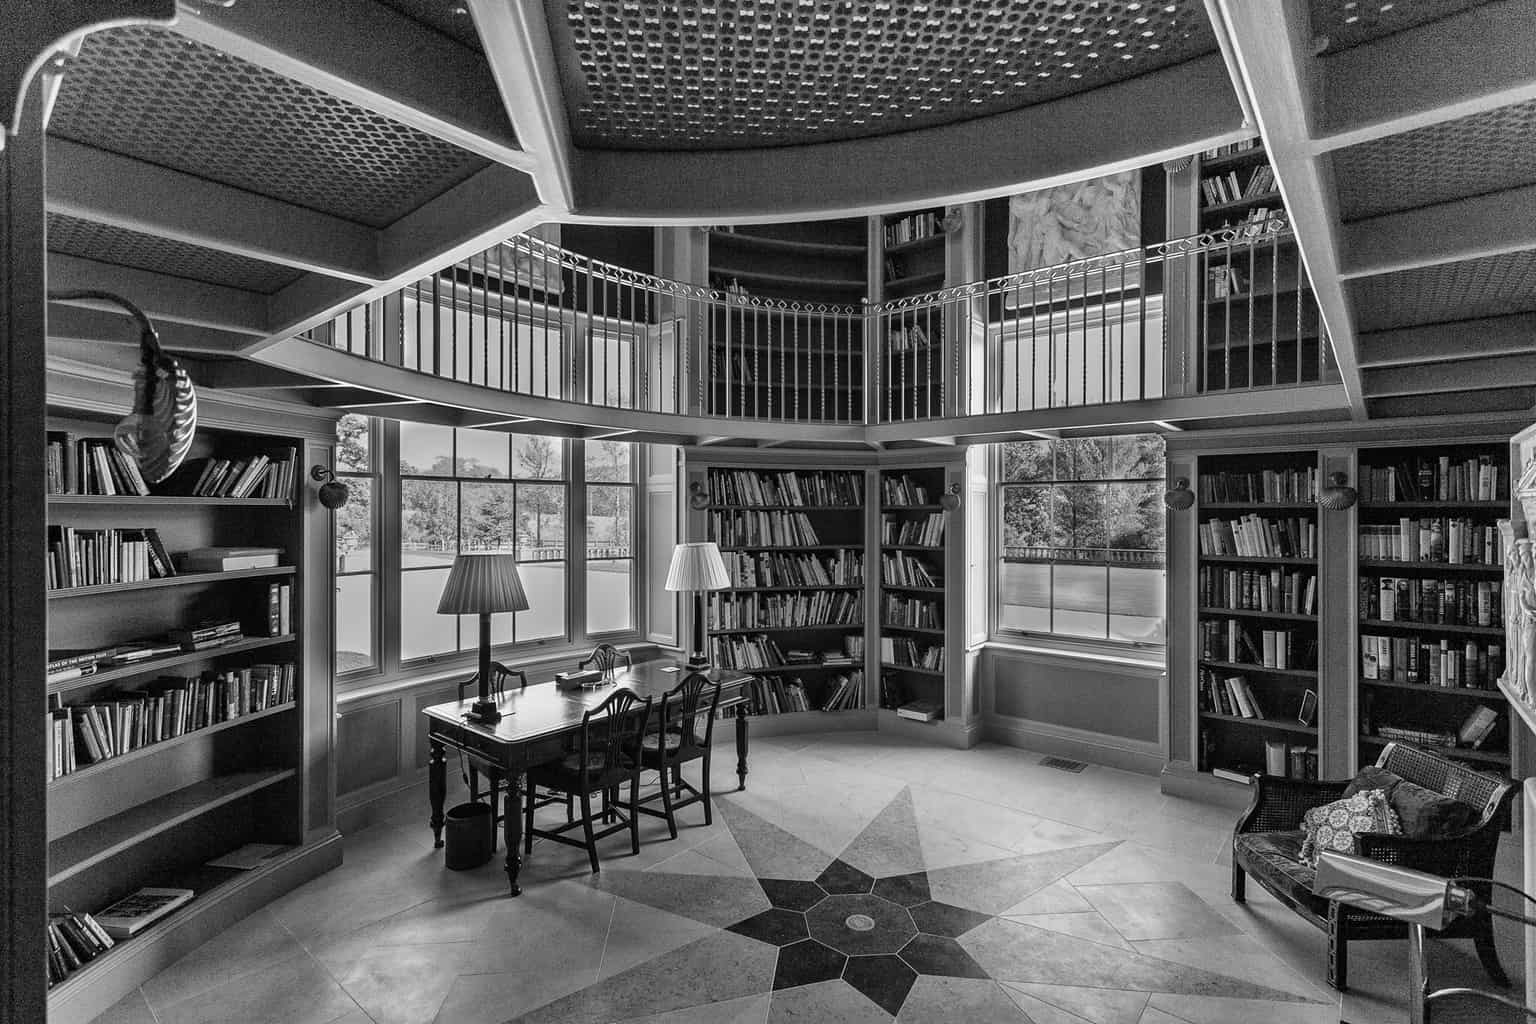 Chideock Manor Library. Stunning, timeless interior space.